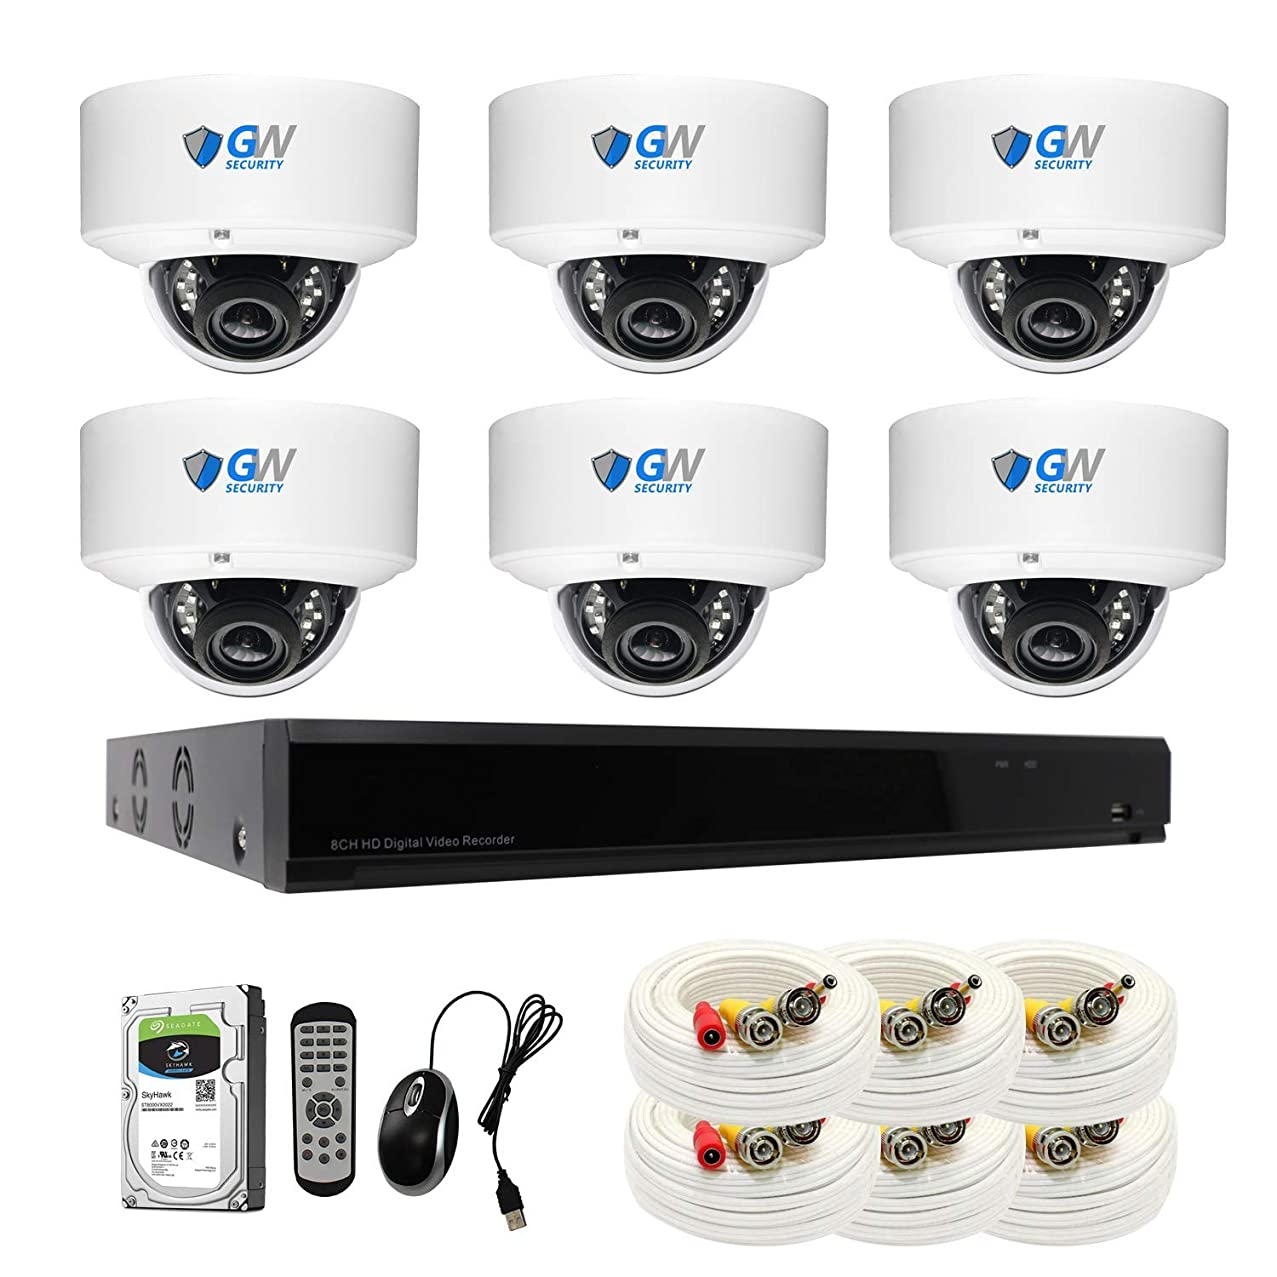 【2019 New】 GW 8CH 4K DVR H.265 8MP Complete Security System with (6) x 4K 2160P Waterproof 2.8-12mm Varifocal Zoom Dome CCTV Security Cameras, 100ft IR Night Vision, 3TB Hard Drive